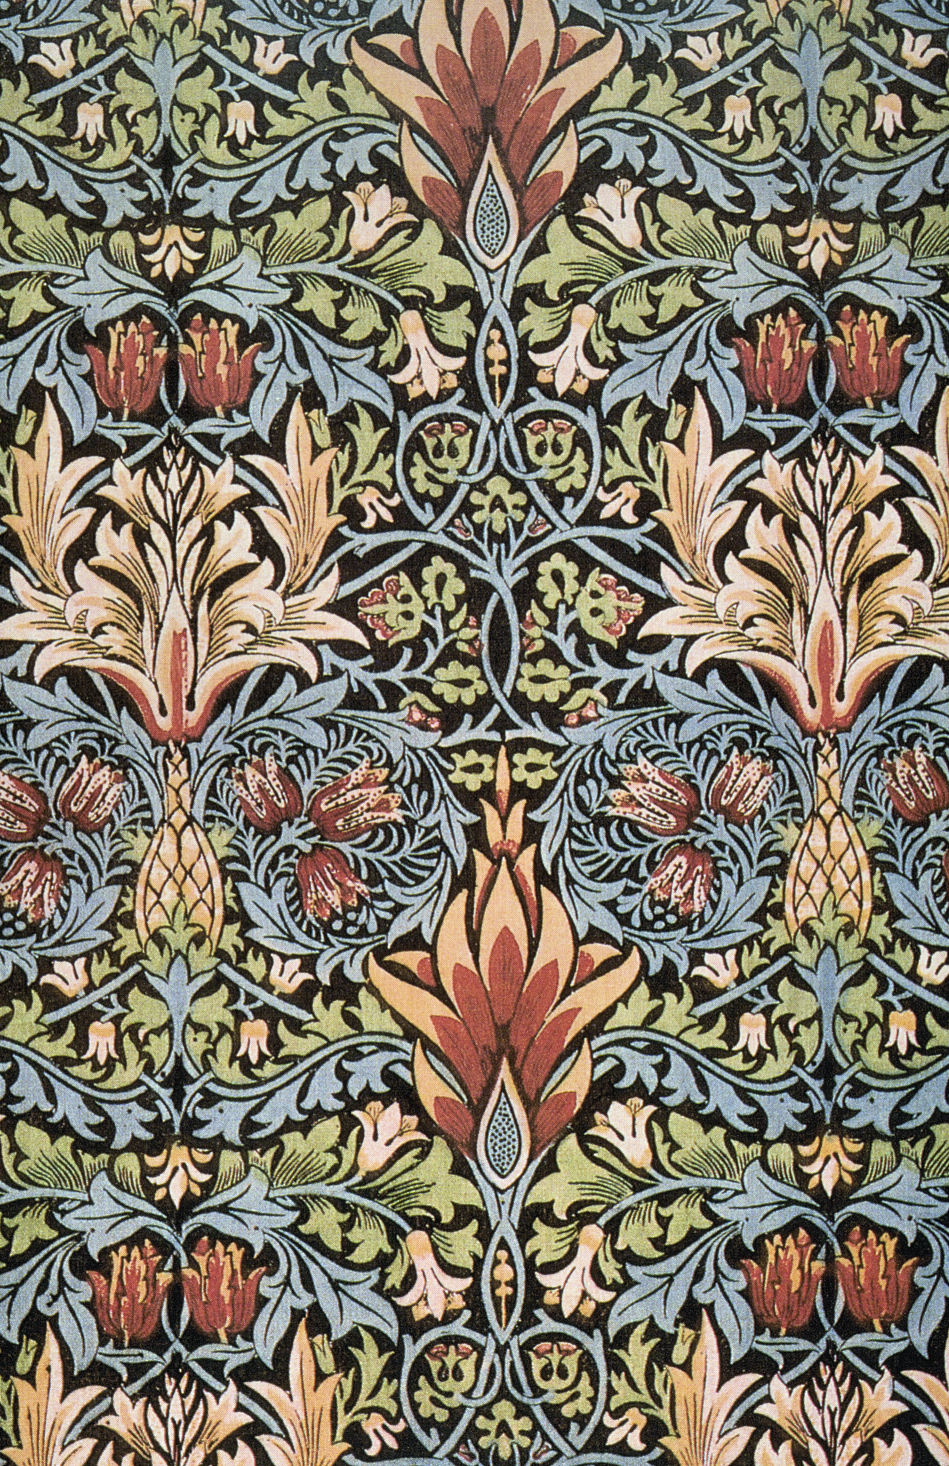 Art artists william morris wallpaper textiles for Arts and crafts style prints